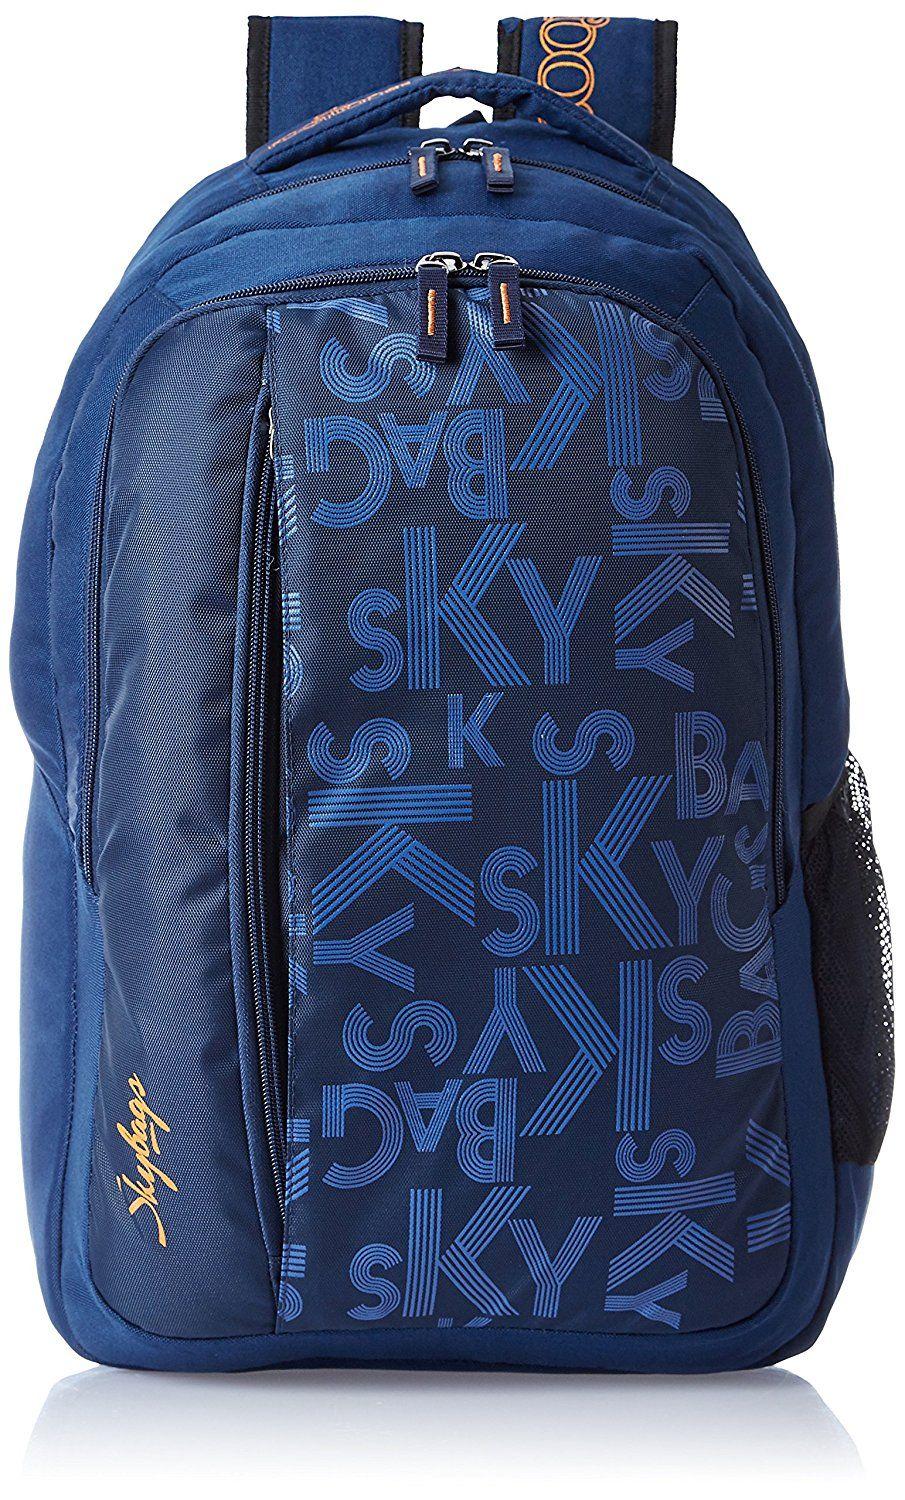 cb7009d6e8 Gorgeous  skybags  backpack of Rs. 2990 in just Rs. 1196 Check out